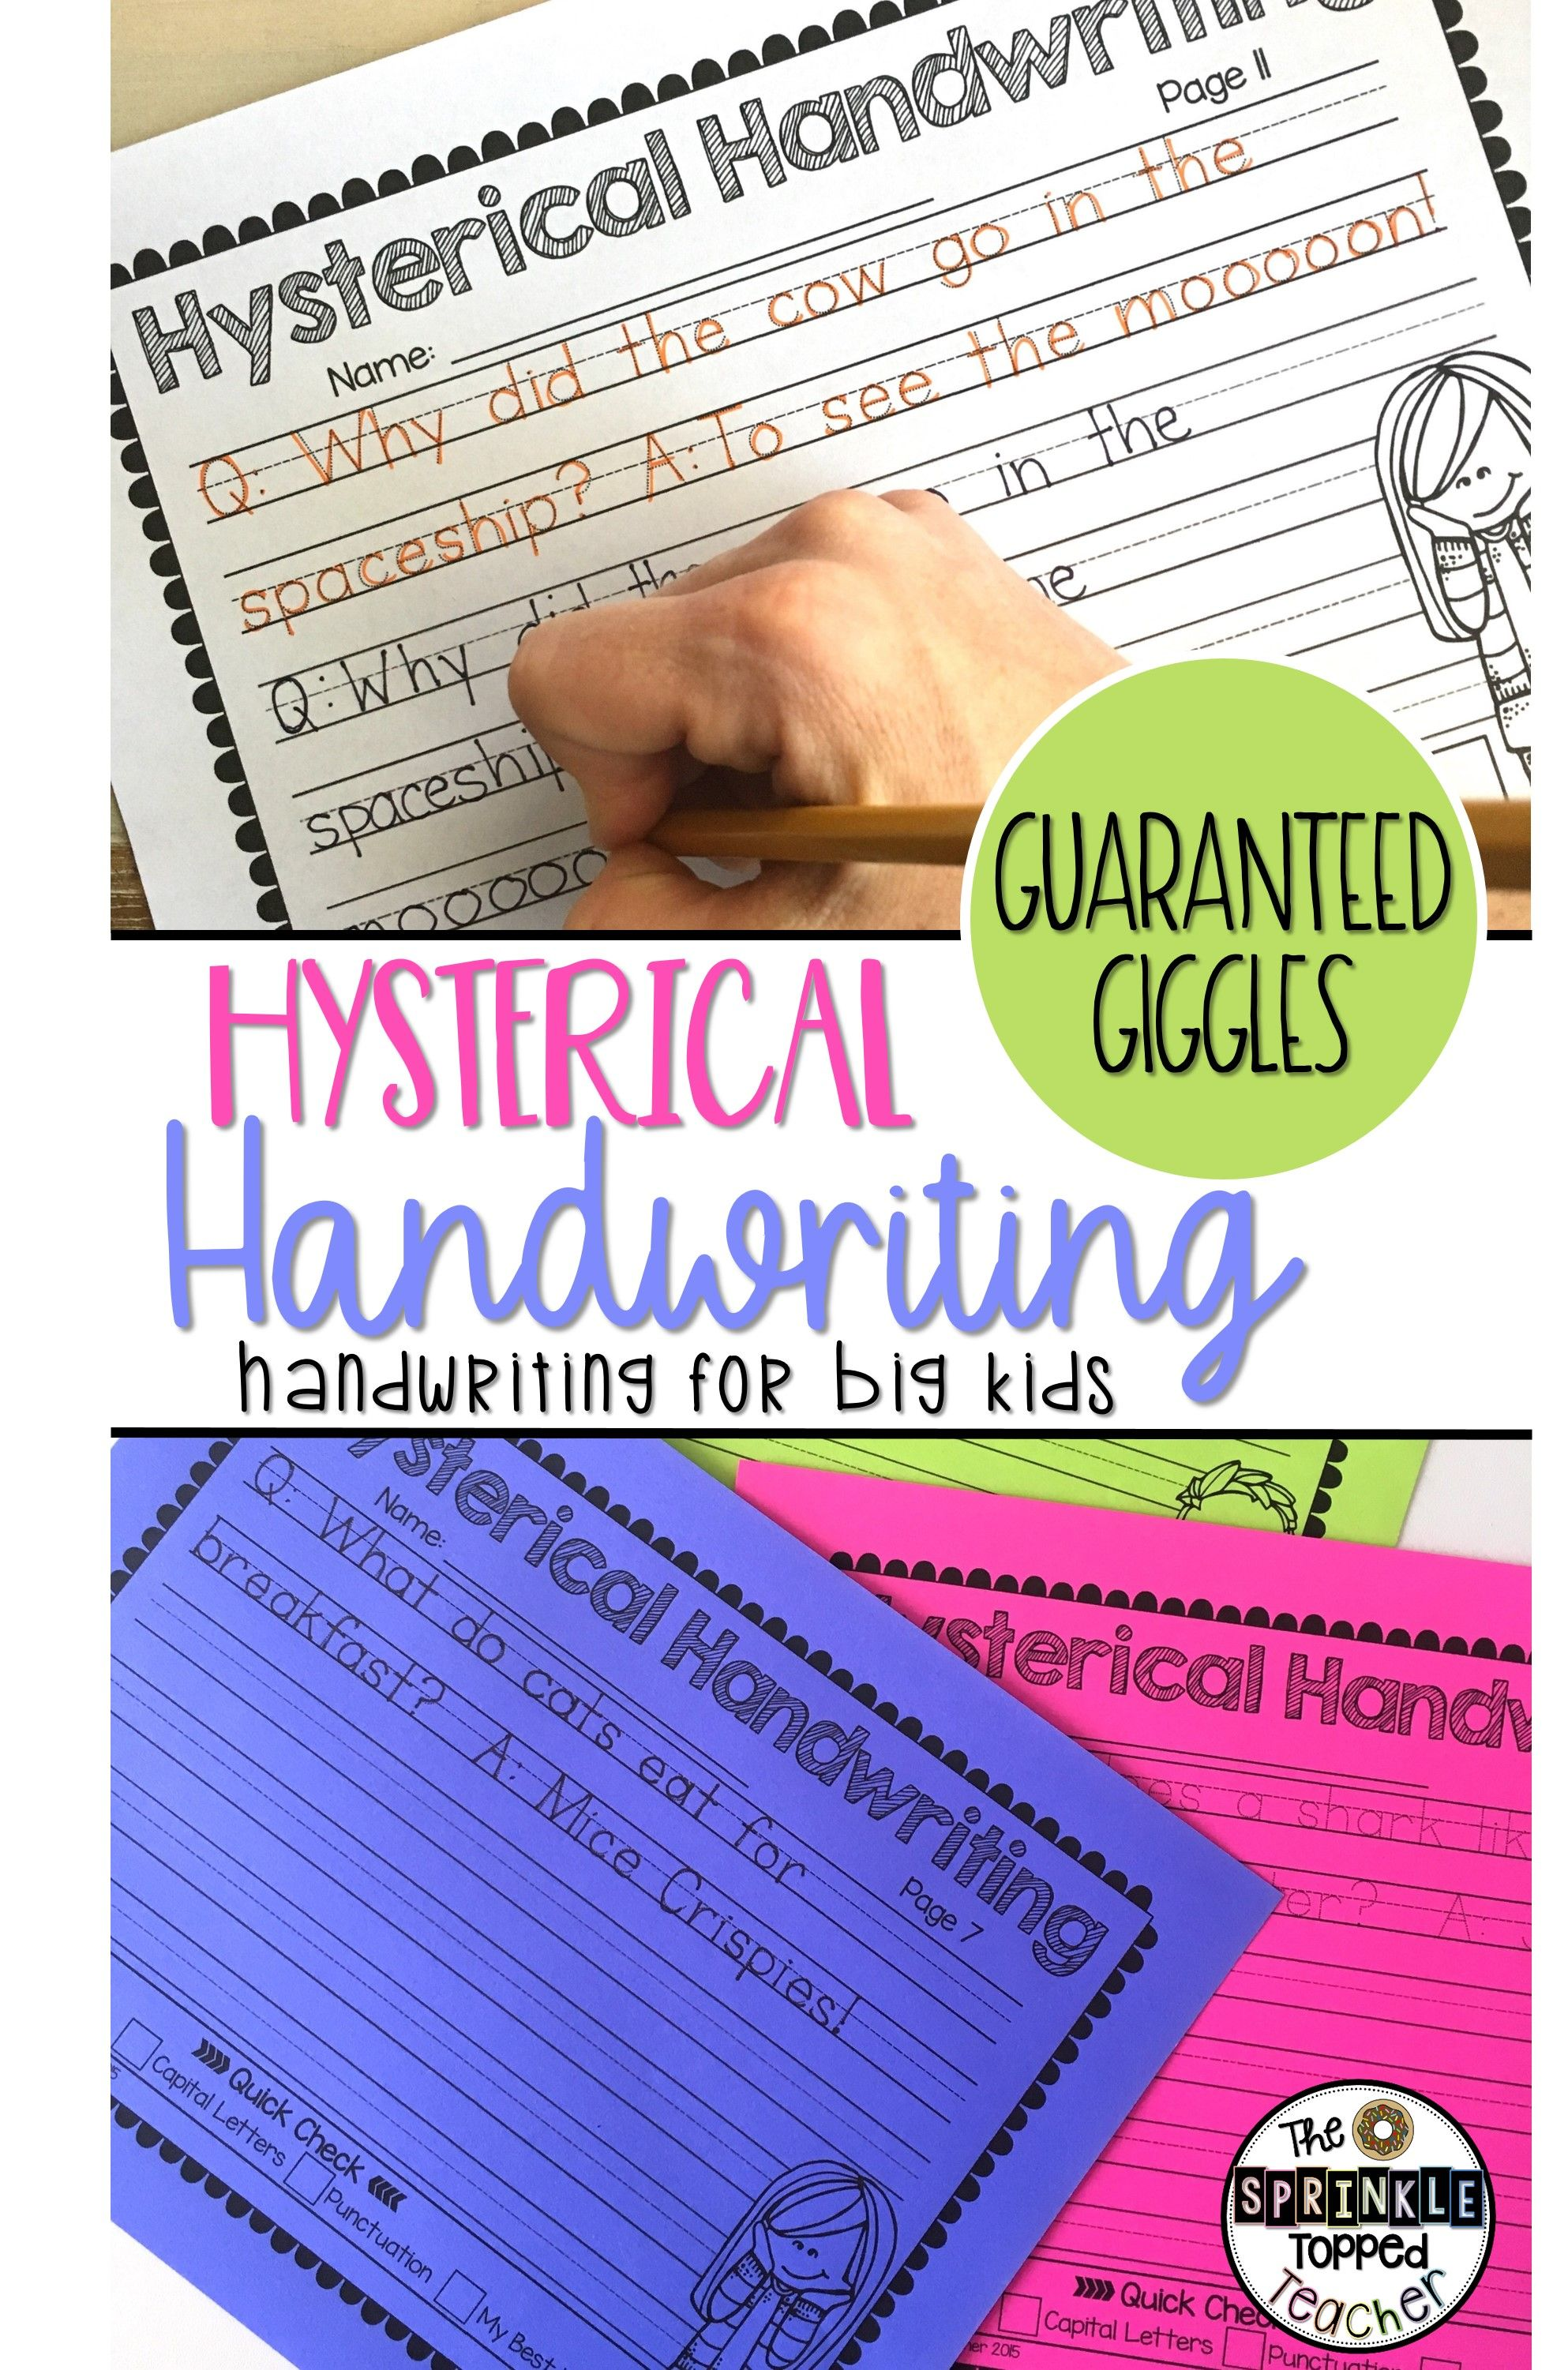 Hysterical Handwriting 2 0 Jokes And Giggles